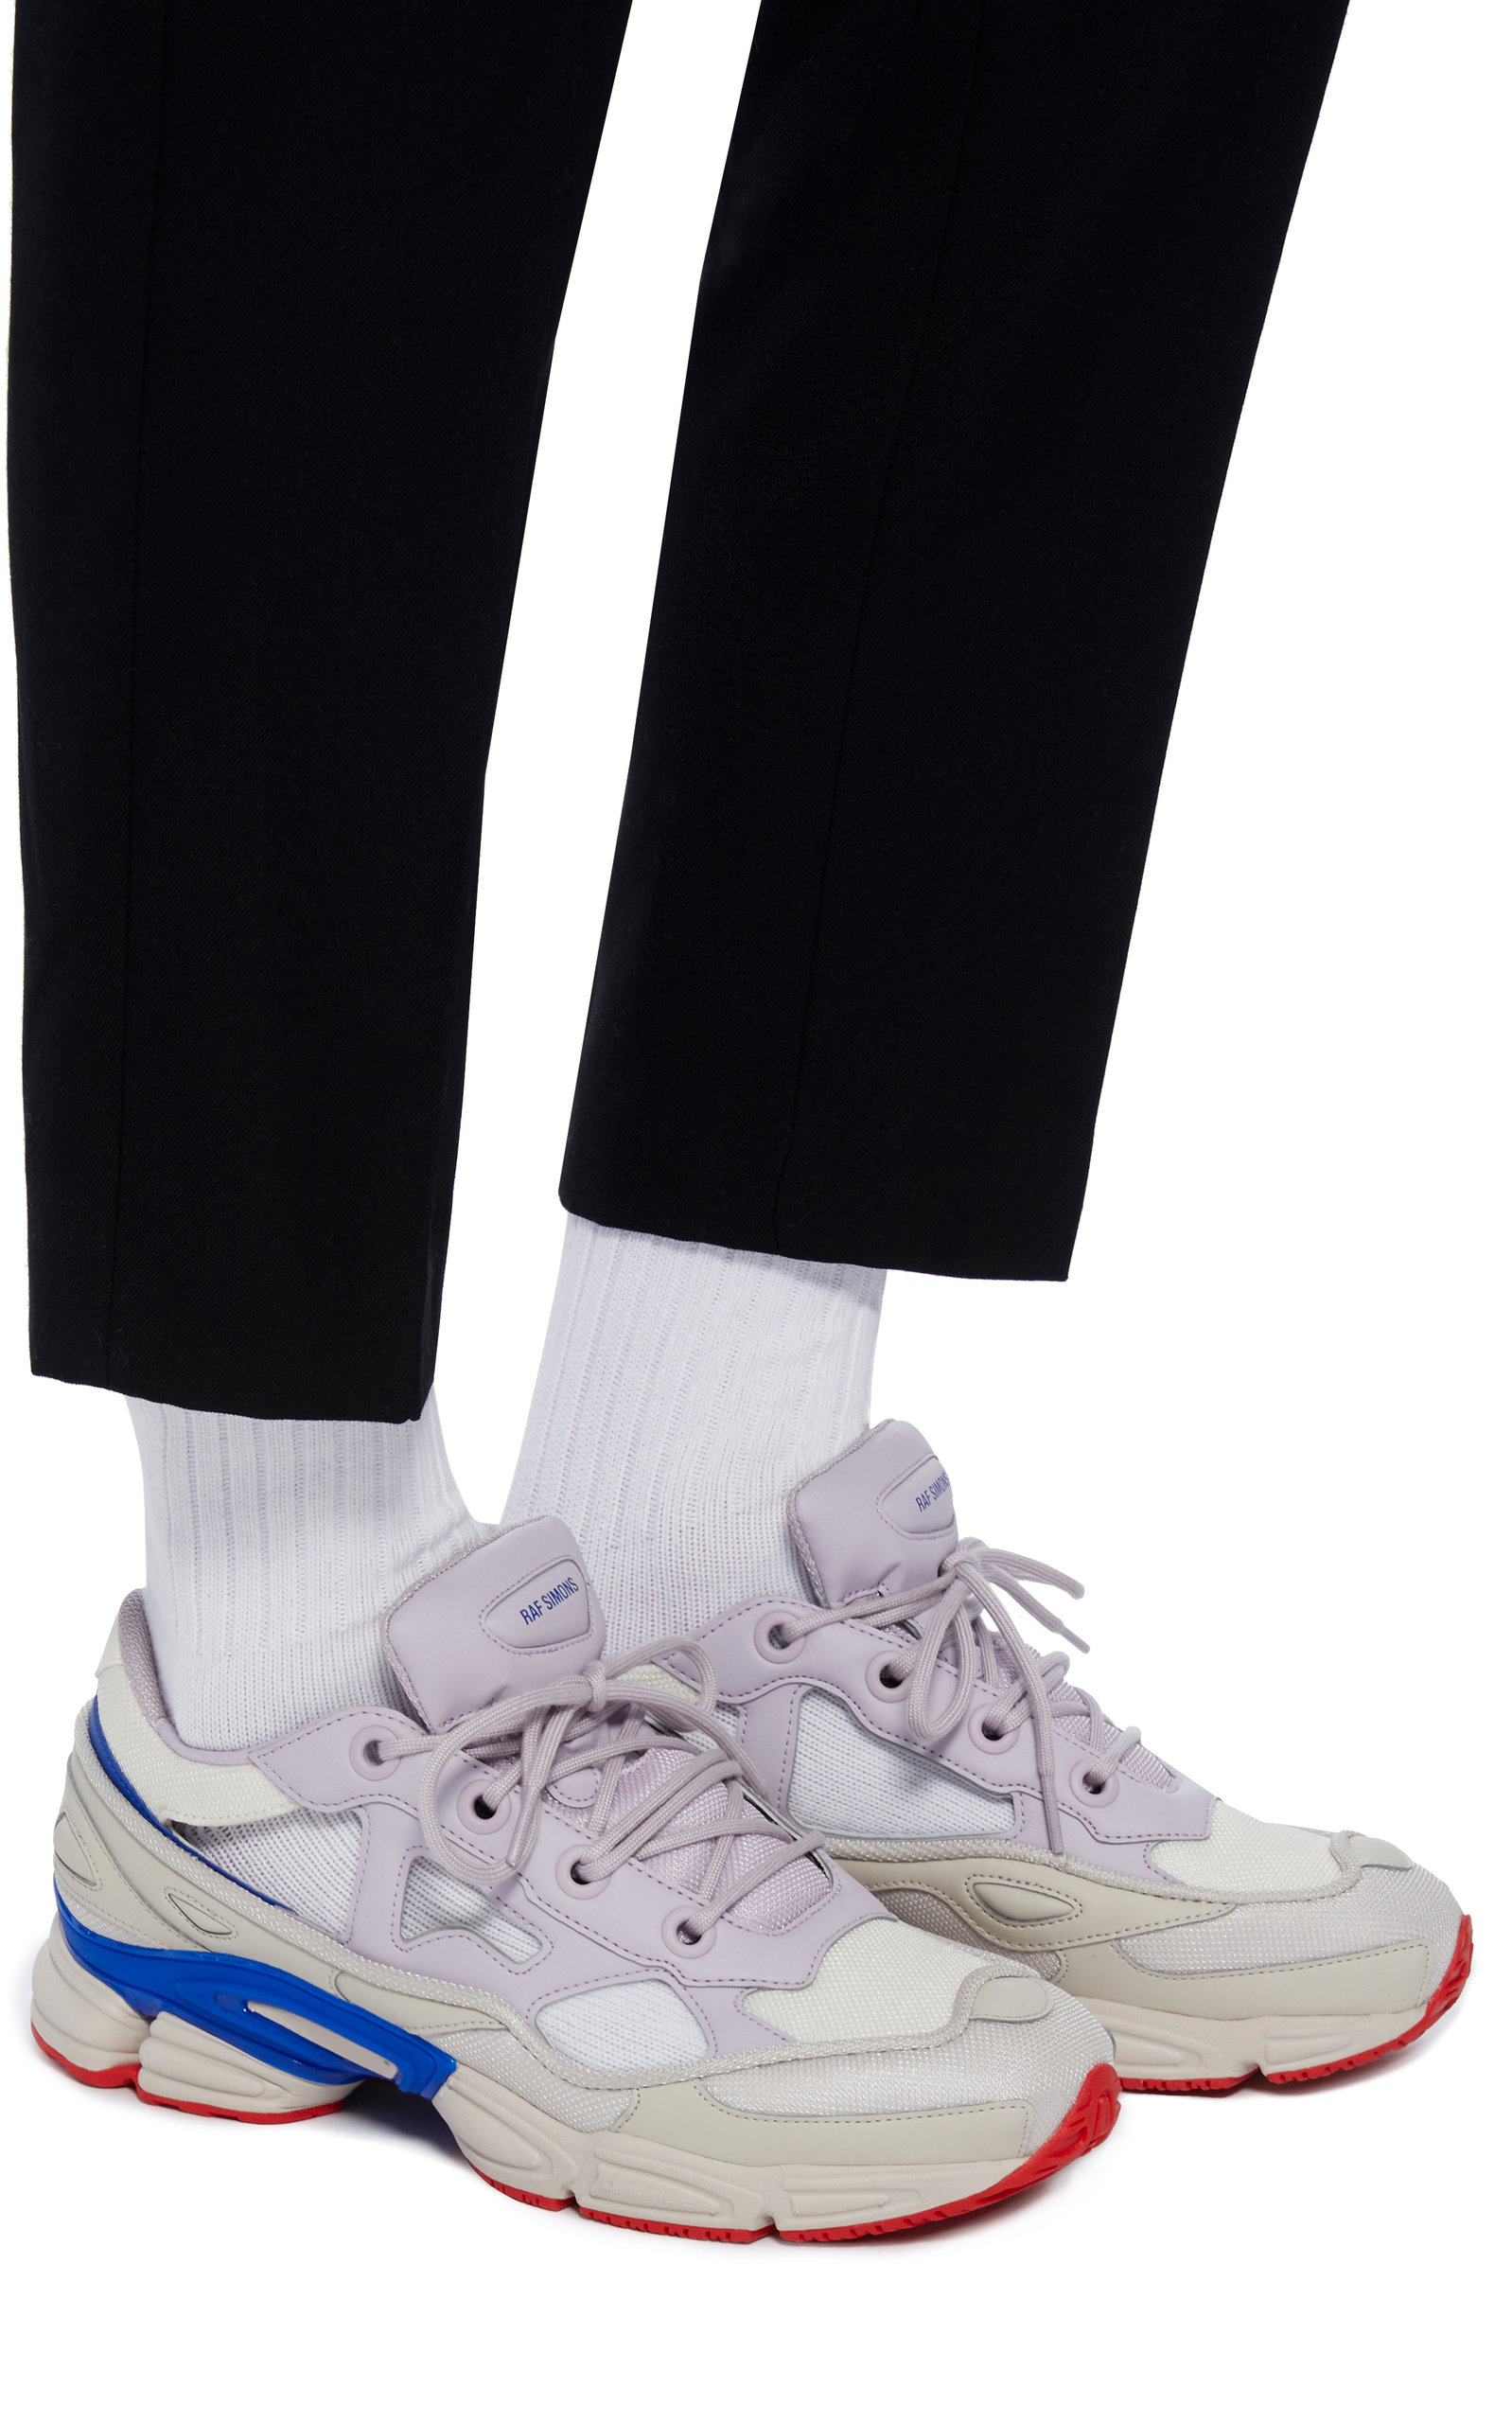 new arrival 36b0a 876e7 RS Replicant Ozweego Sneakers